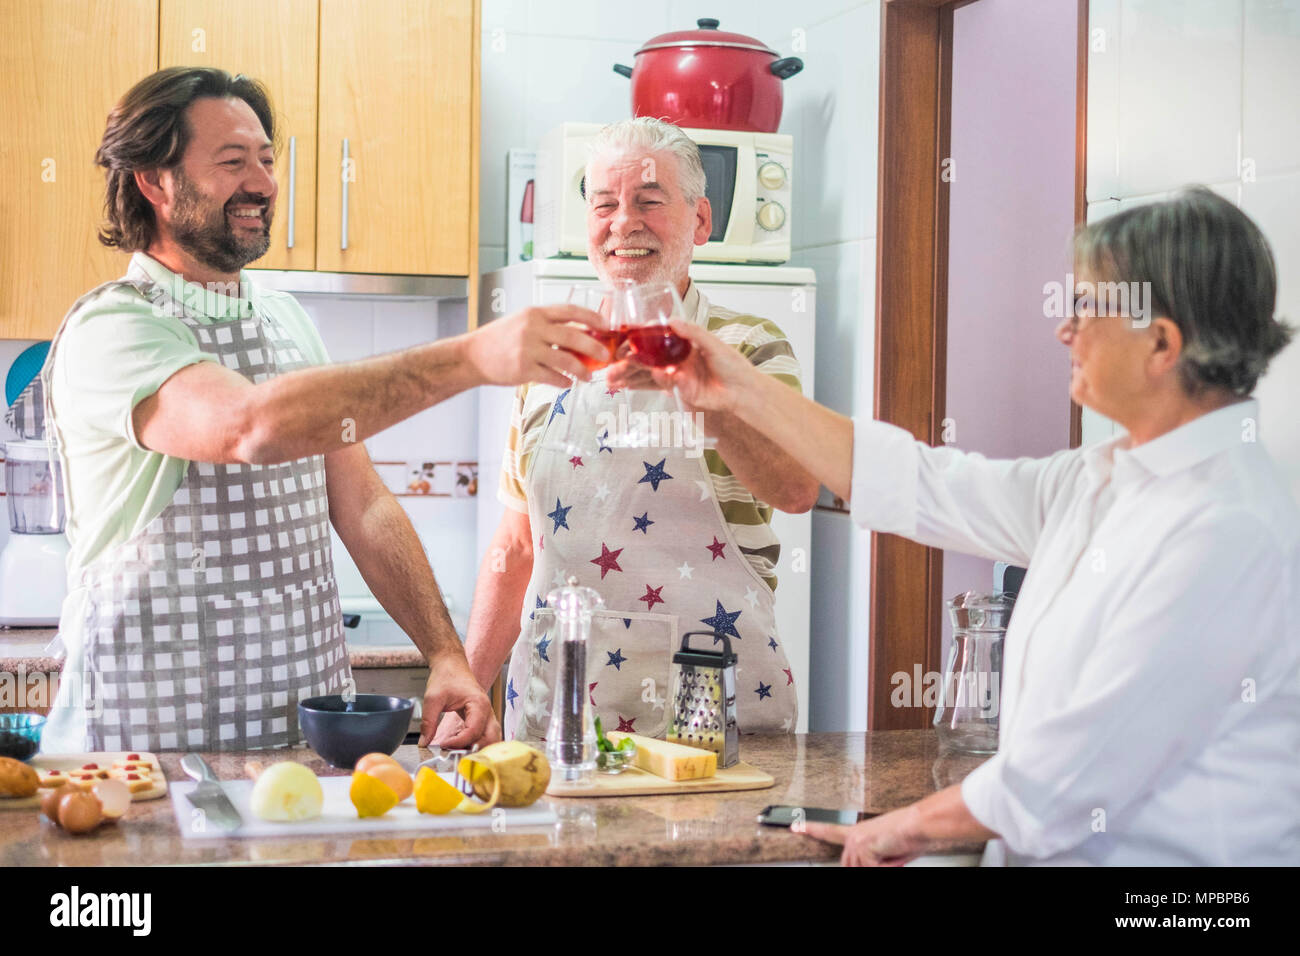 3-person family toasting with red wine while preparing dishes prepared in the home kitchen - Stock Image